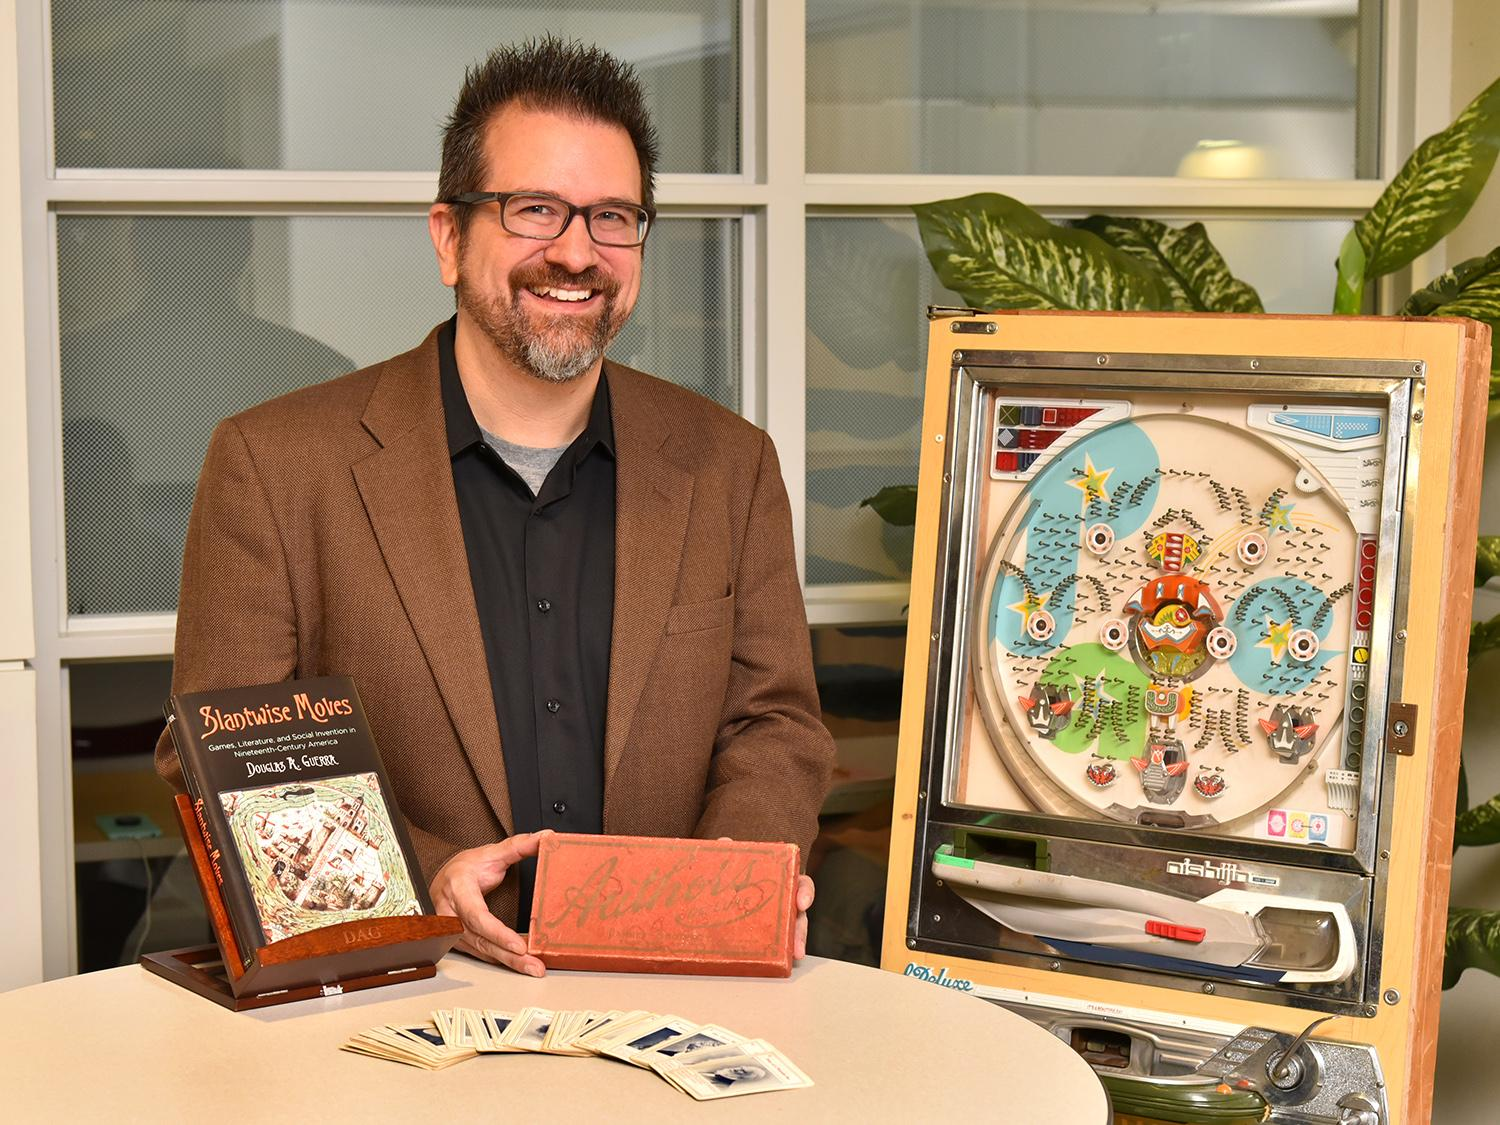 Douglas Guerra of SUNY Oswego's English and creative writing faculty recently earned the Popular Culture Association's Ray and Pat Browne Award for his book Slantwise Moves, which connects books, games and 19th-century social lives